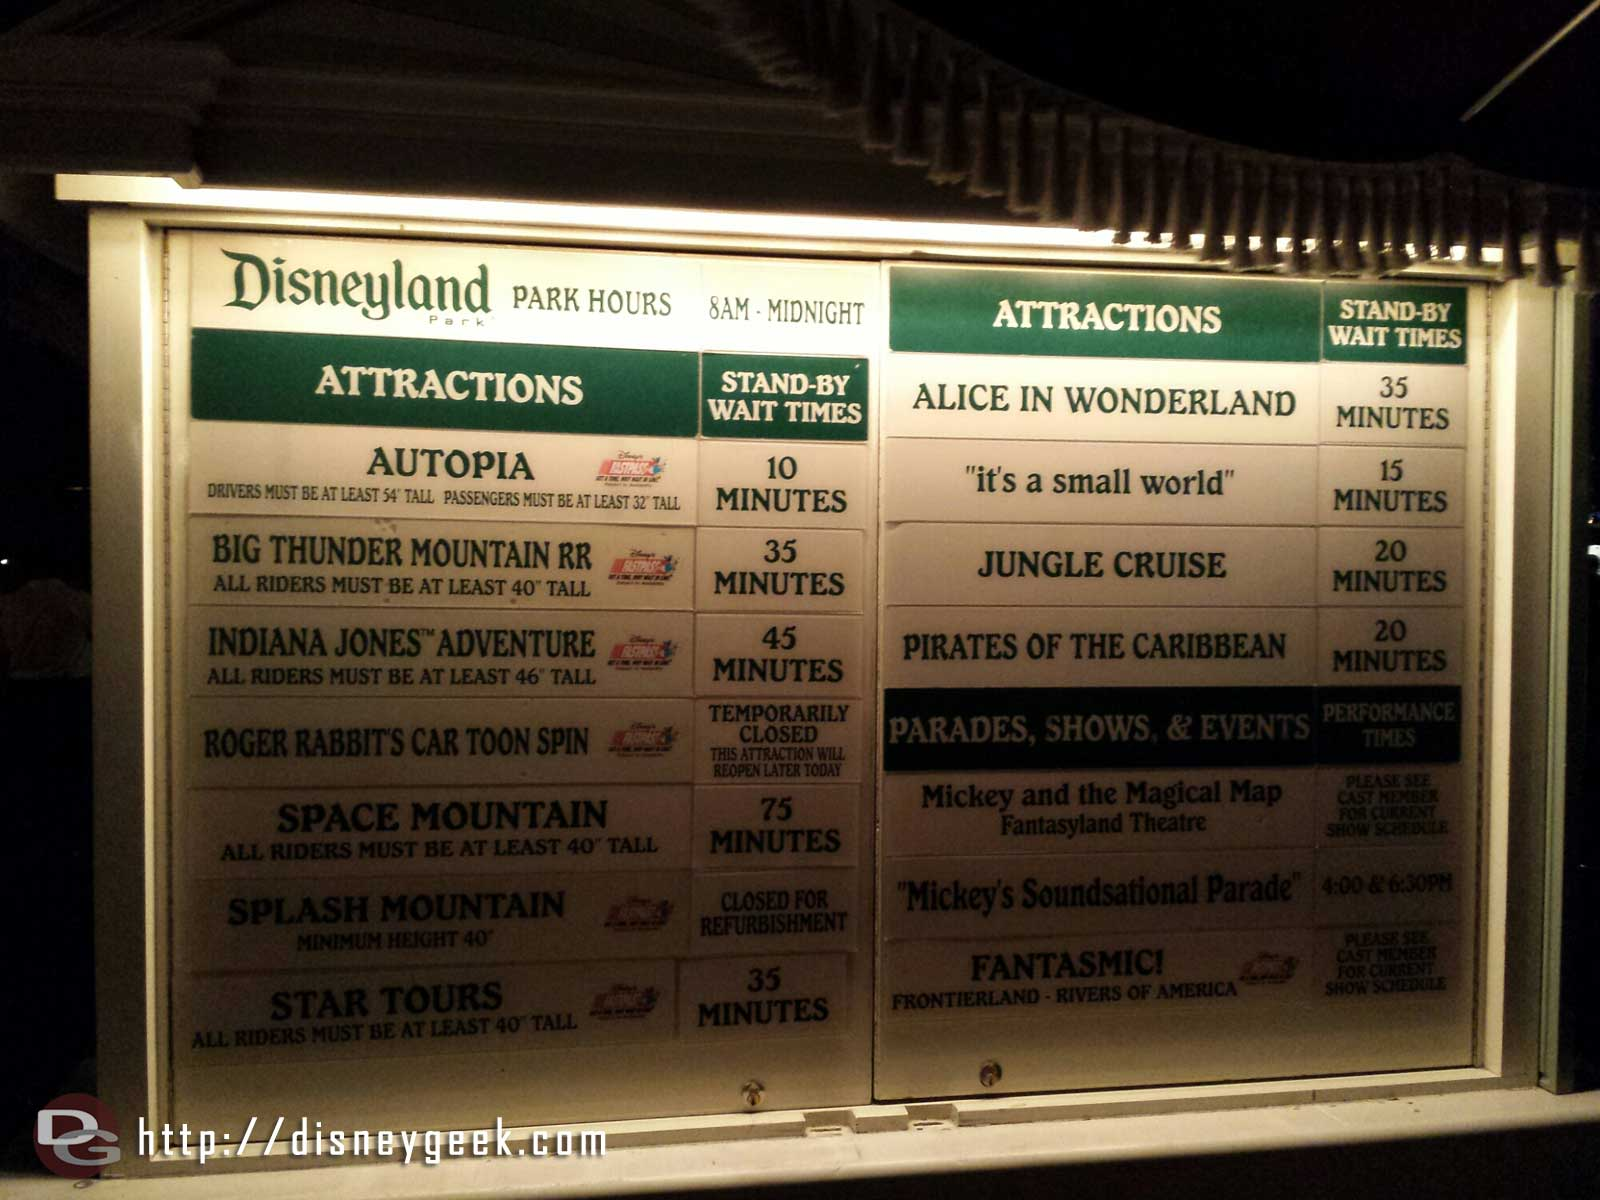 #Disneyland waits as of 7:42pm